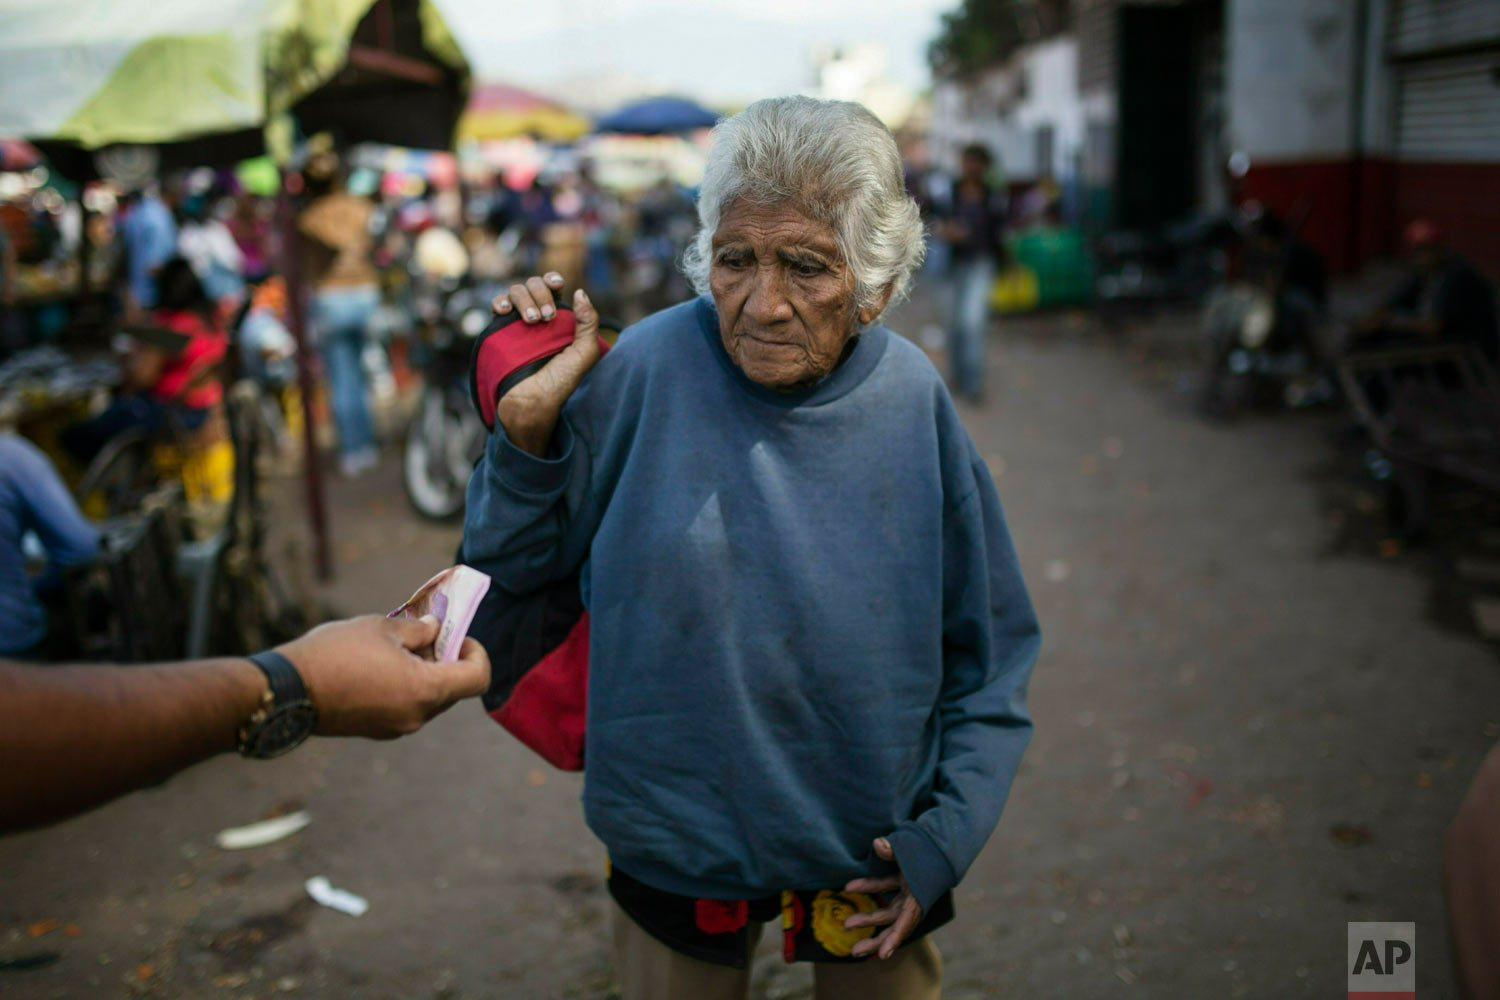 An elderly woman is offered cash as she begs at a wholesale food market in Caracas, Venezuela, Jan. 28, 2019. Economists agree that the longer the standoff between a U.S.-backed opposition leader and the president drags on, the more regular Venezuelans are likely to suffer. (AP Photo/Rodrigo Abd)